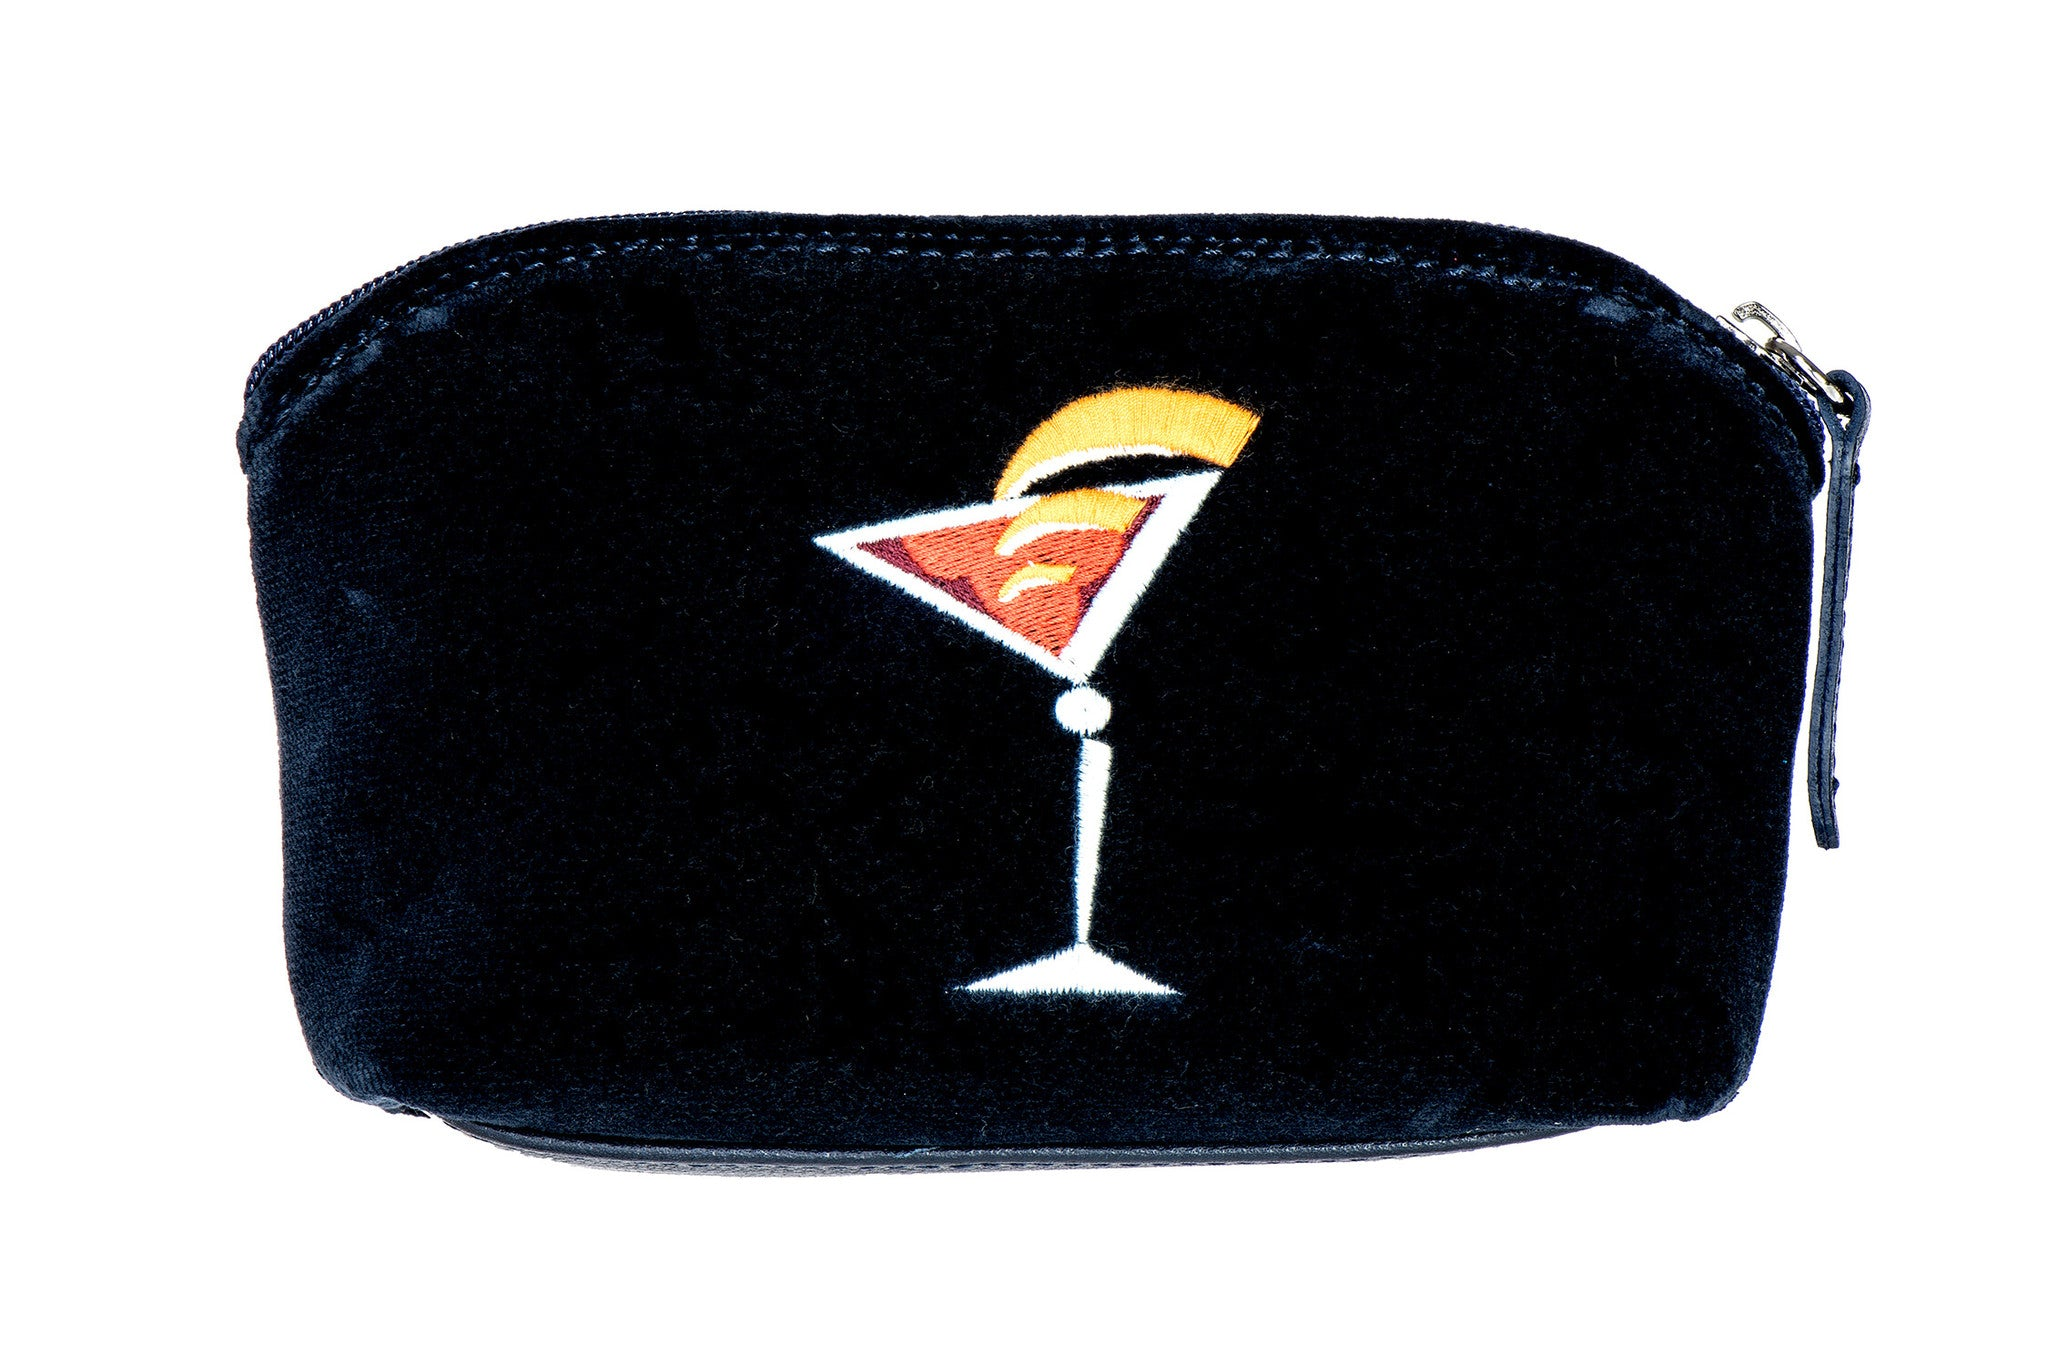 Martini Pocket